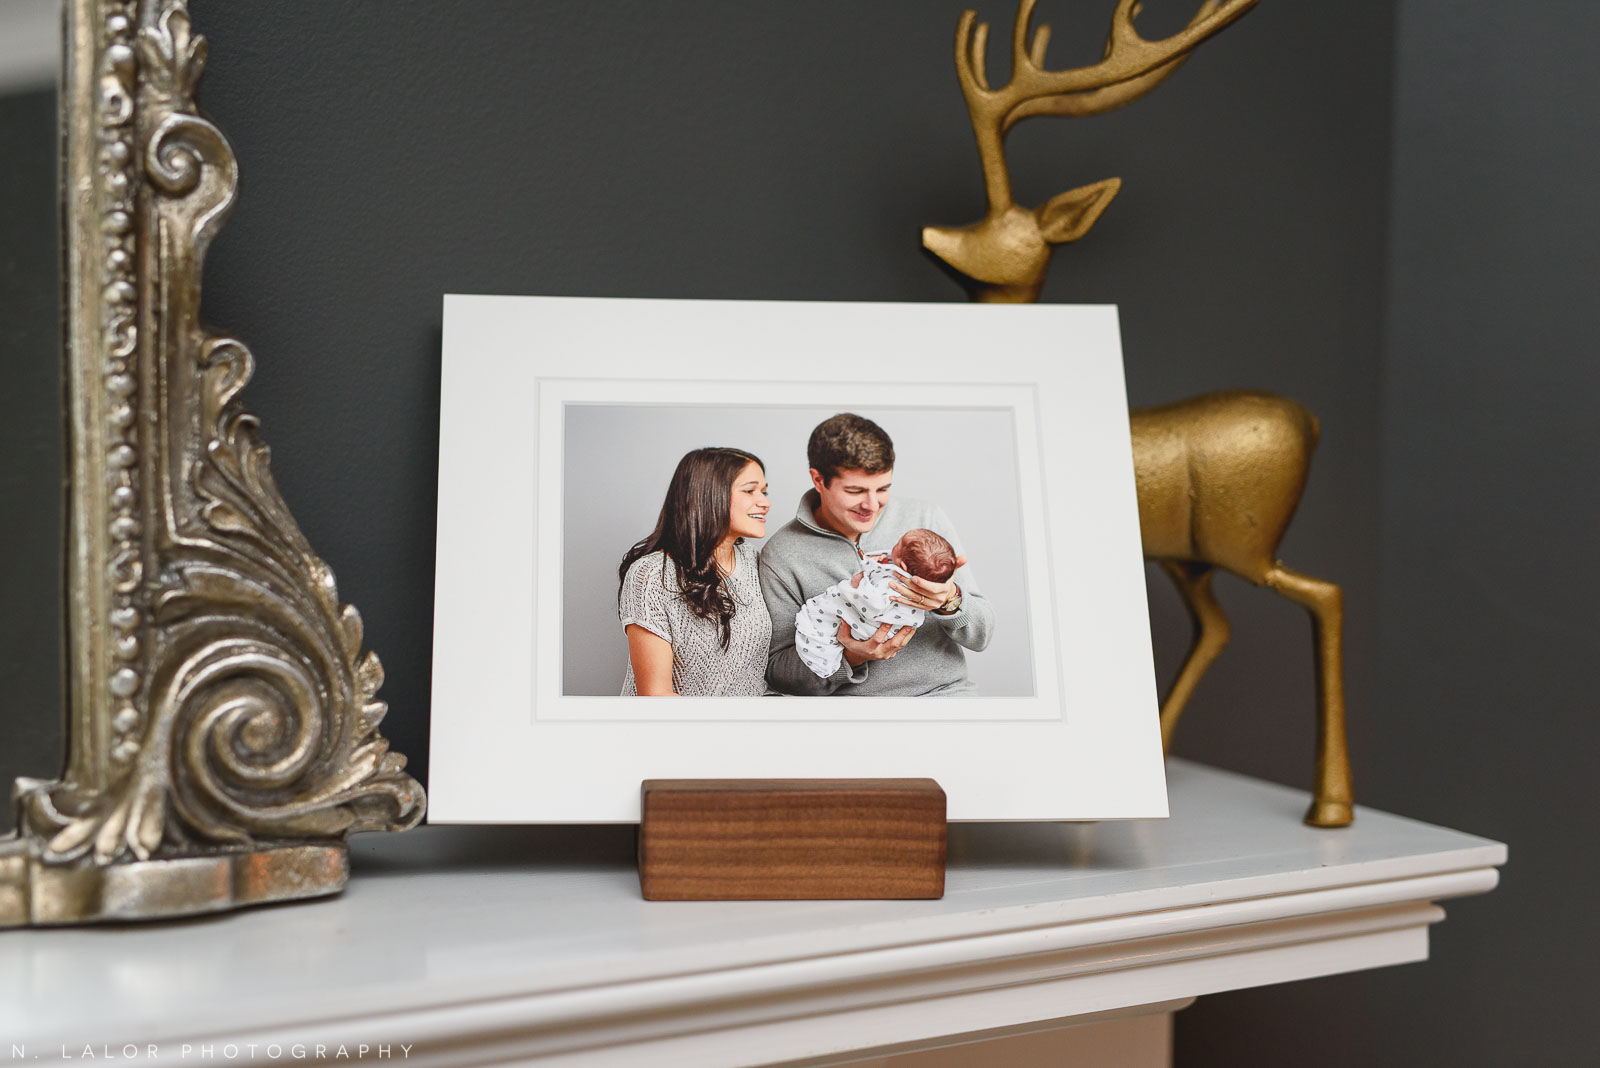 Matted print on stand, displayed on a mantel. N. Lalor Photography's luxury fine art photography products, based in Greenwich, Connecticut.